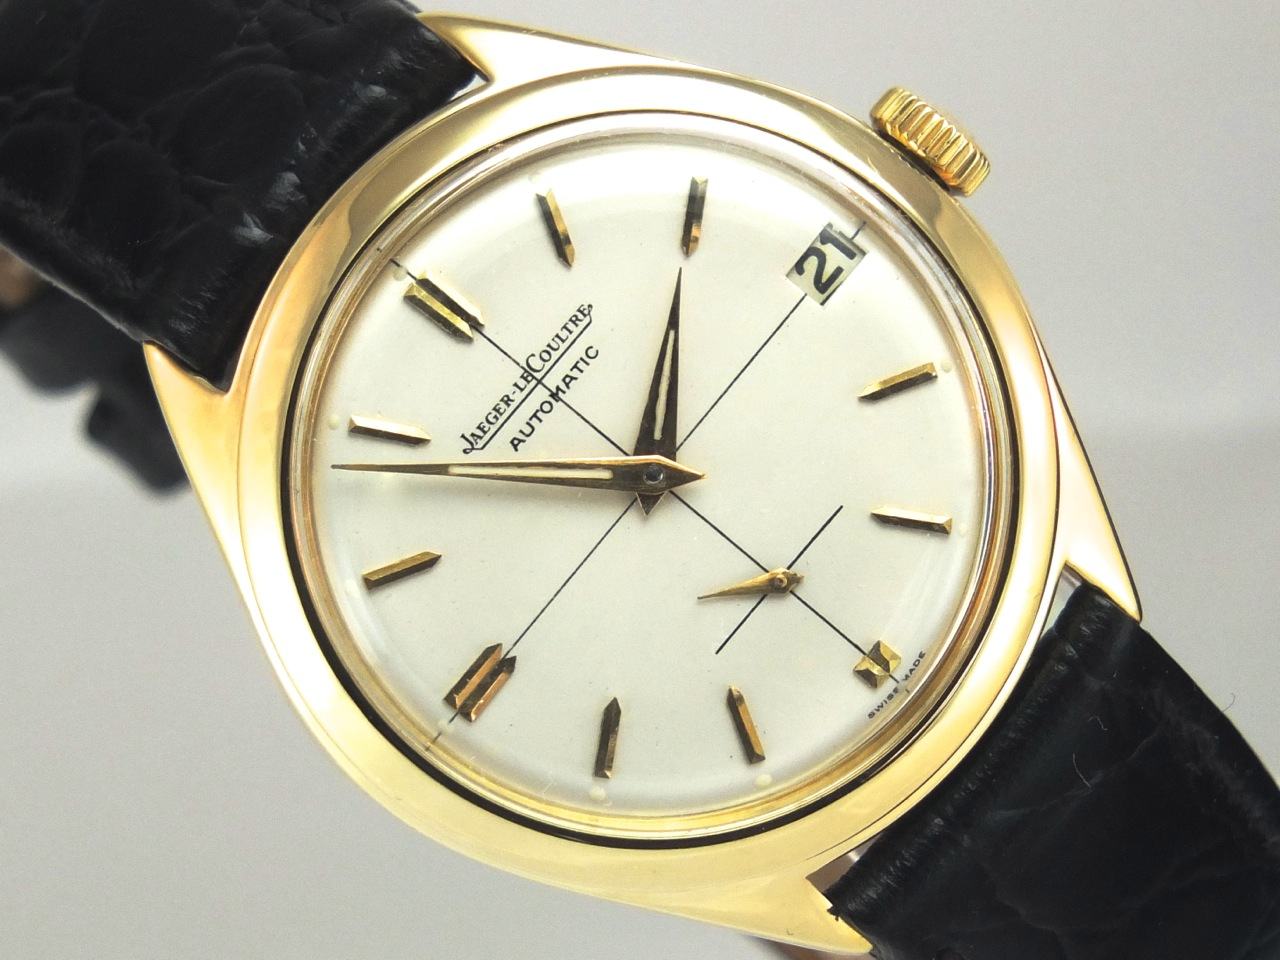 Jaeger lecoultre 18k automatic 1957 vintage gold watches for Gold timepieces watch